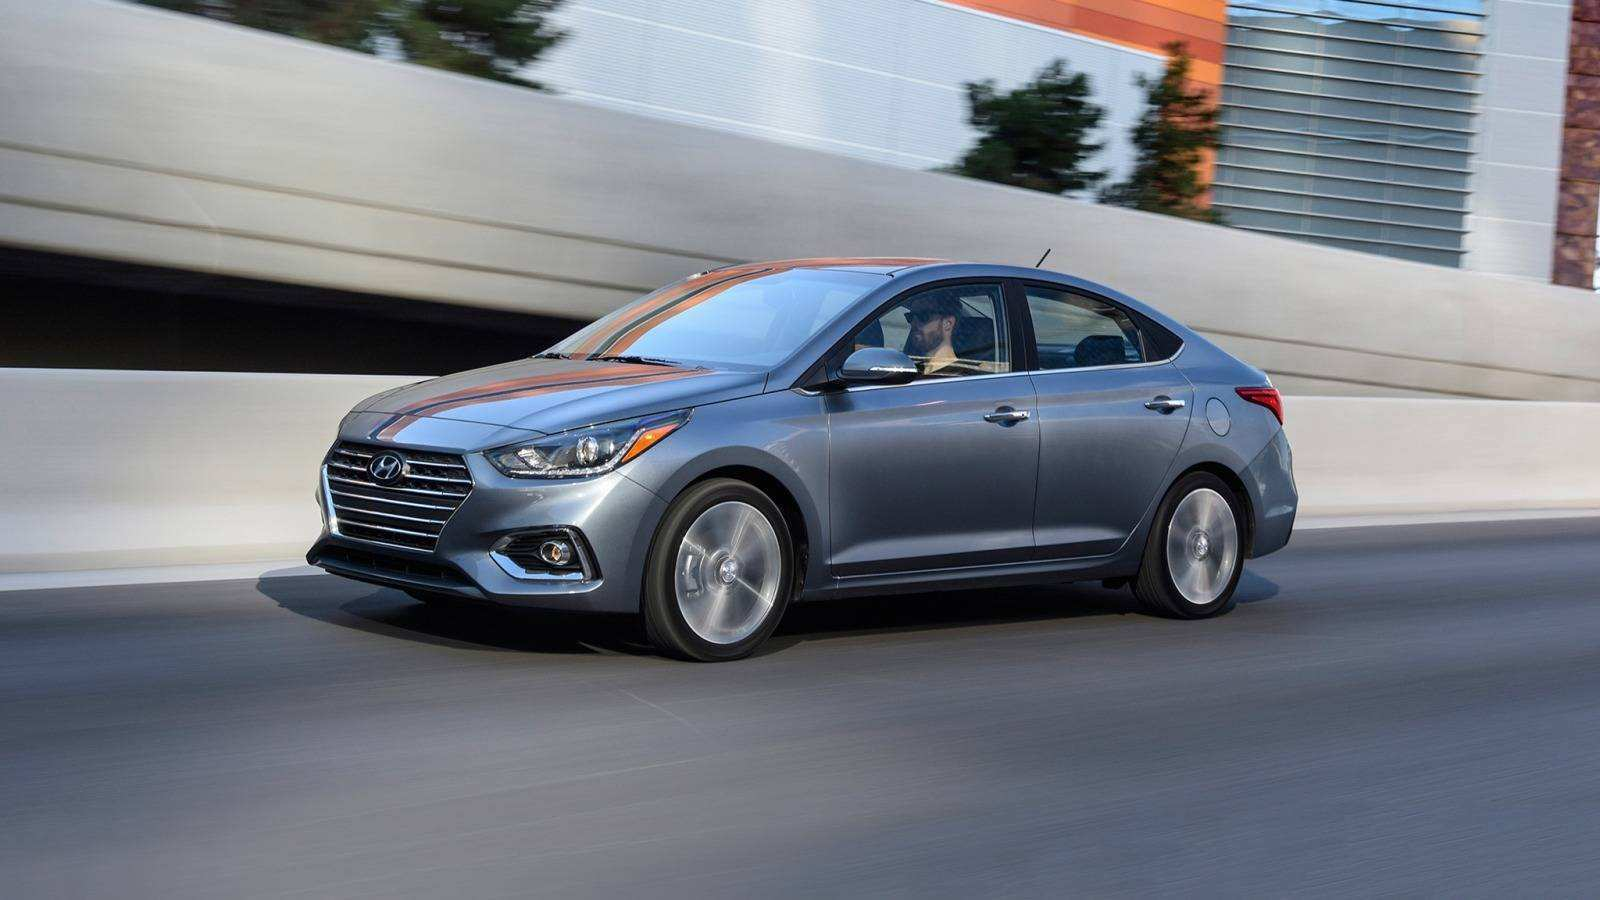 21 Best Review 2020 Hyundai Accent 2018 Spesification with 2020 Hyundai Accent 2018